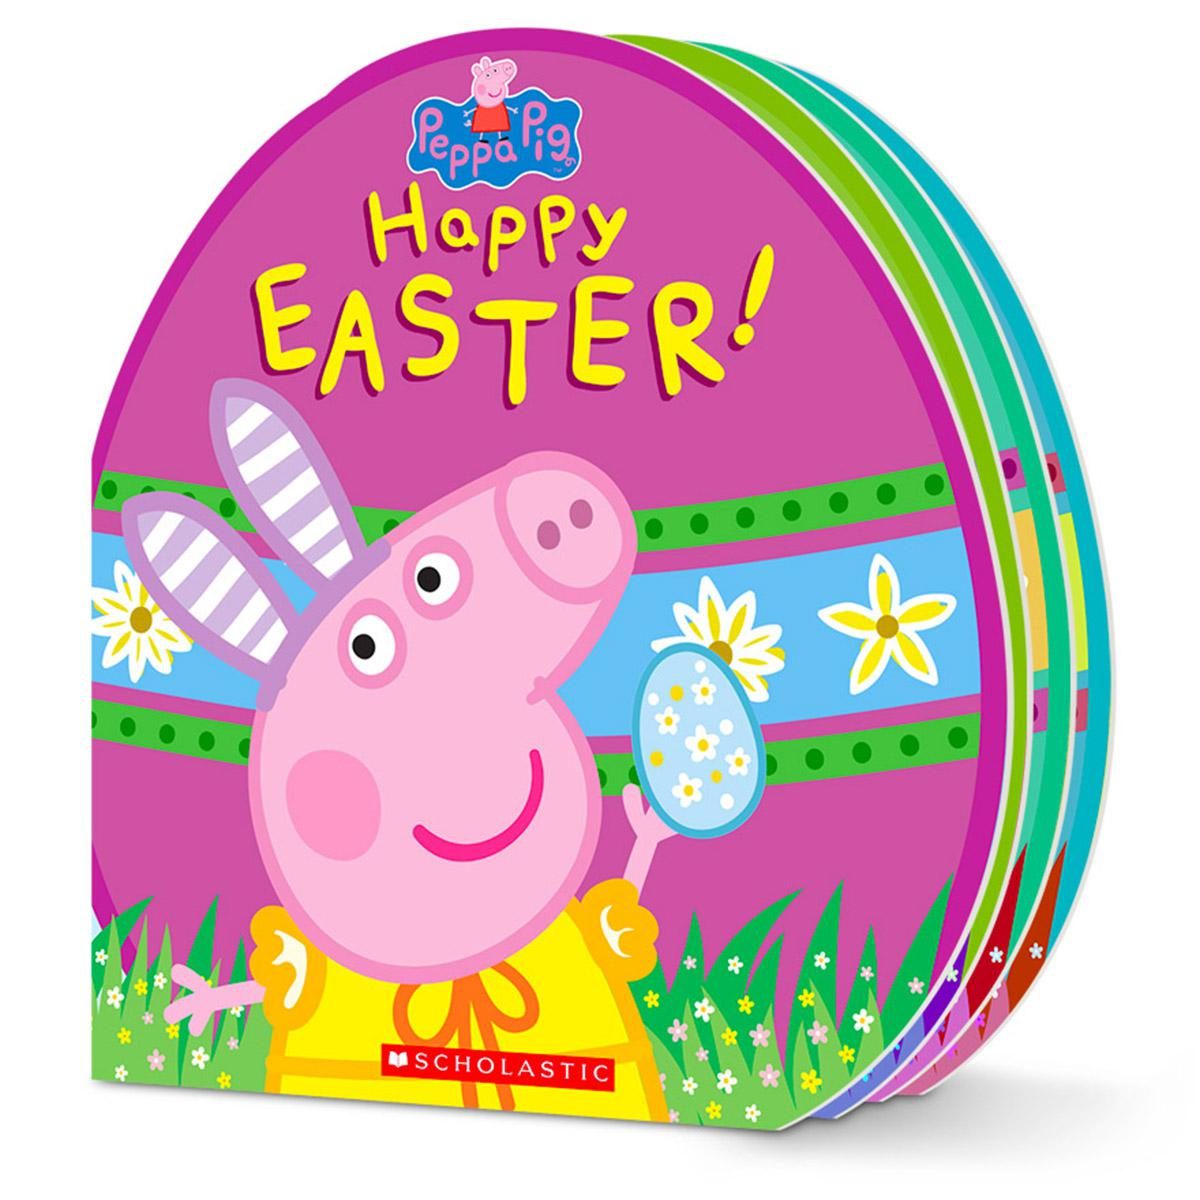 Peppa Pig: Happy Easter!